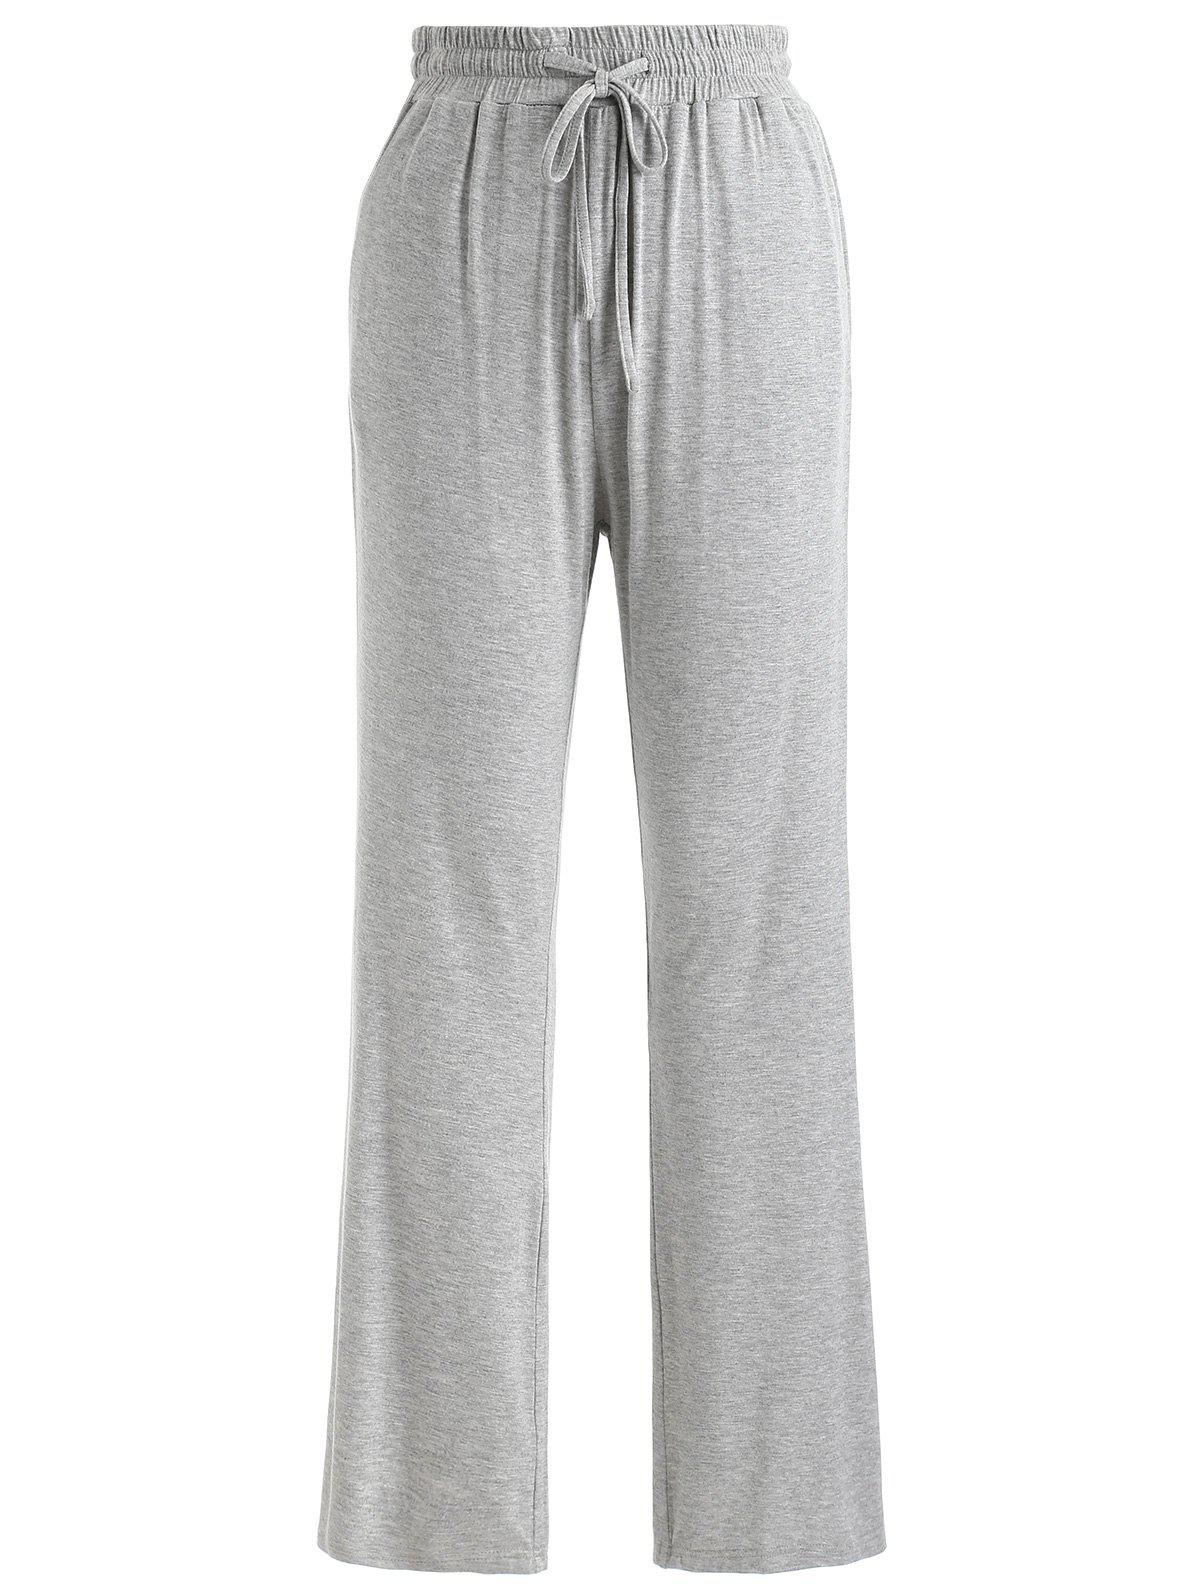 Discount Drawstring Flare Sleeping Pants